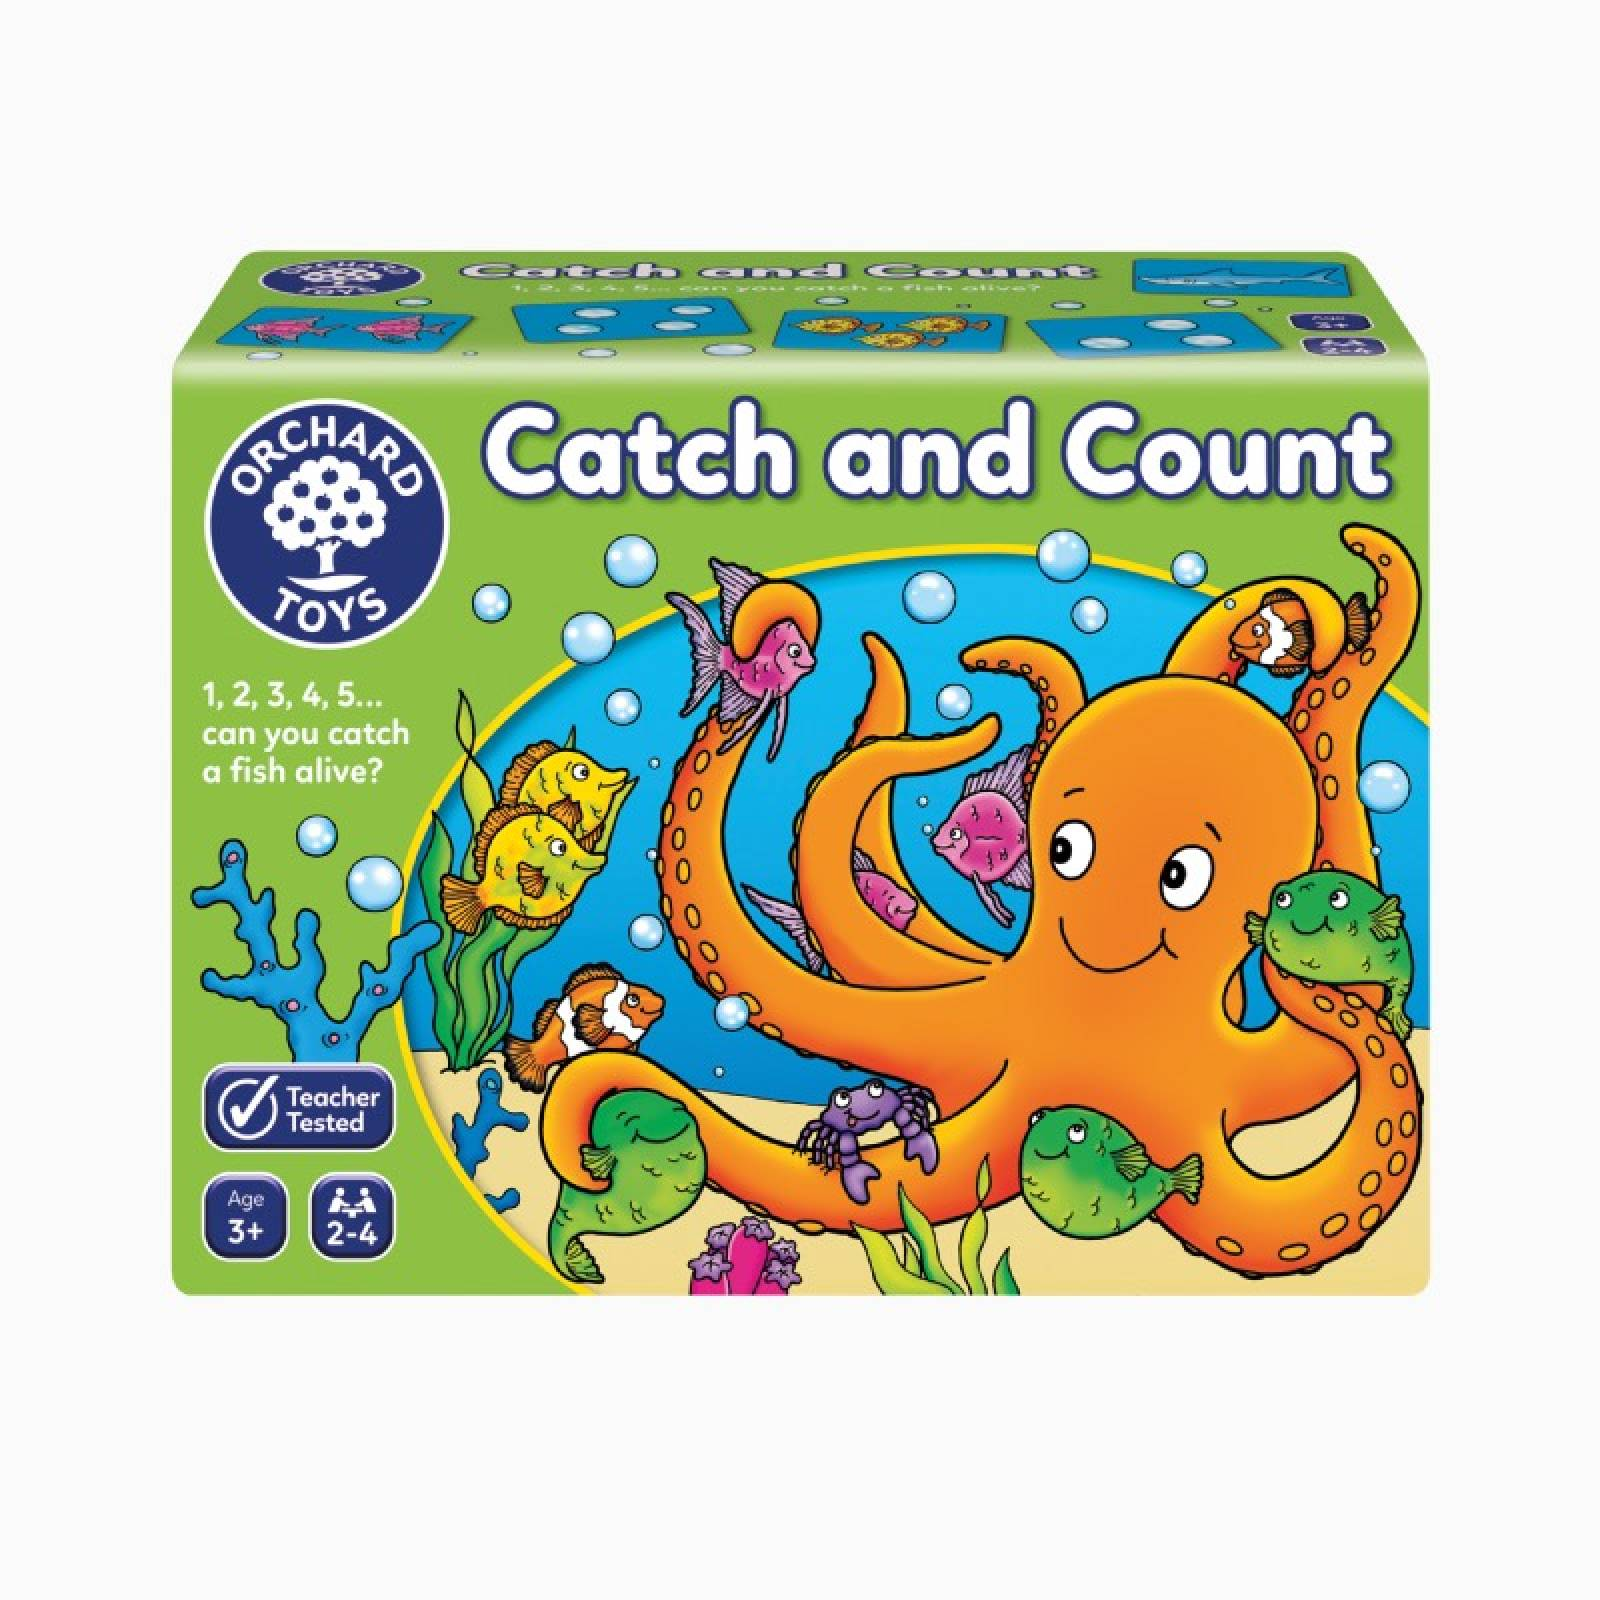 Catch And Count Game By Orchard Toys 3+